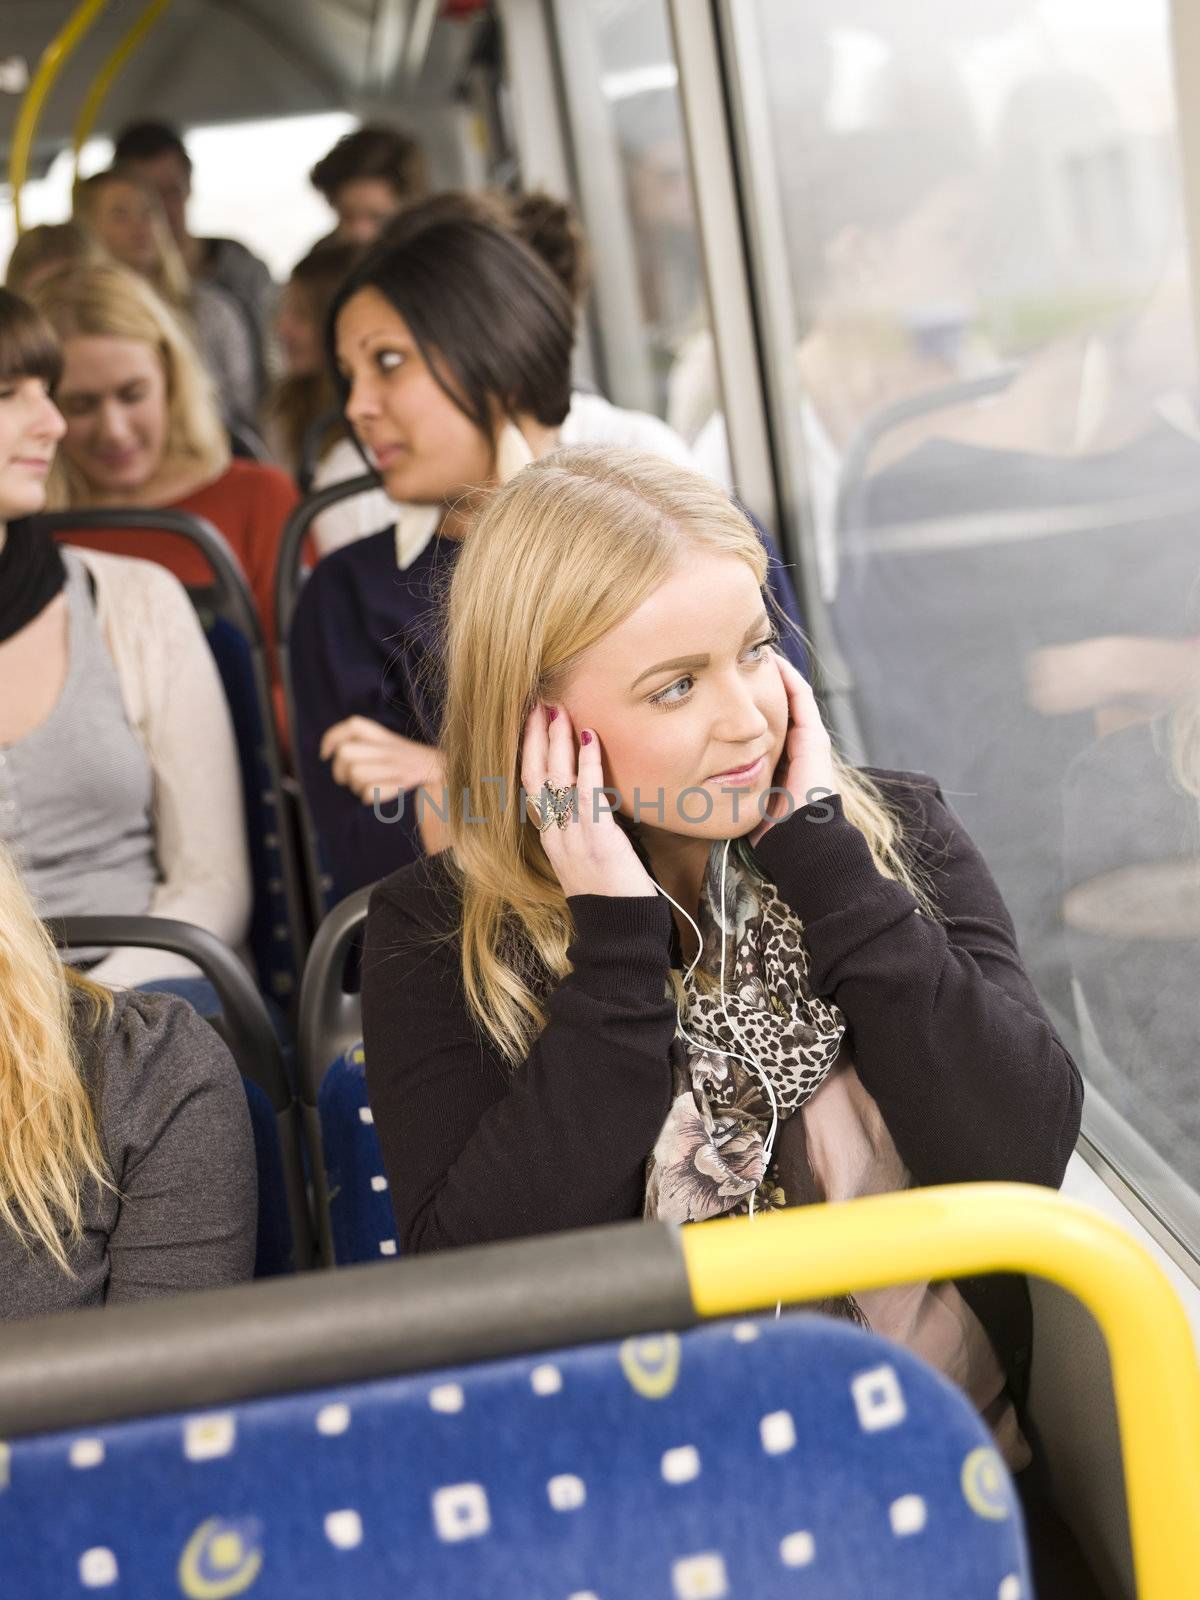 Woman listen to music while going by the bus